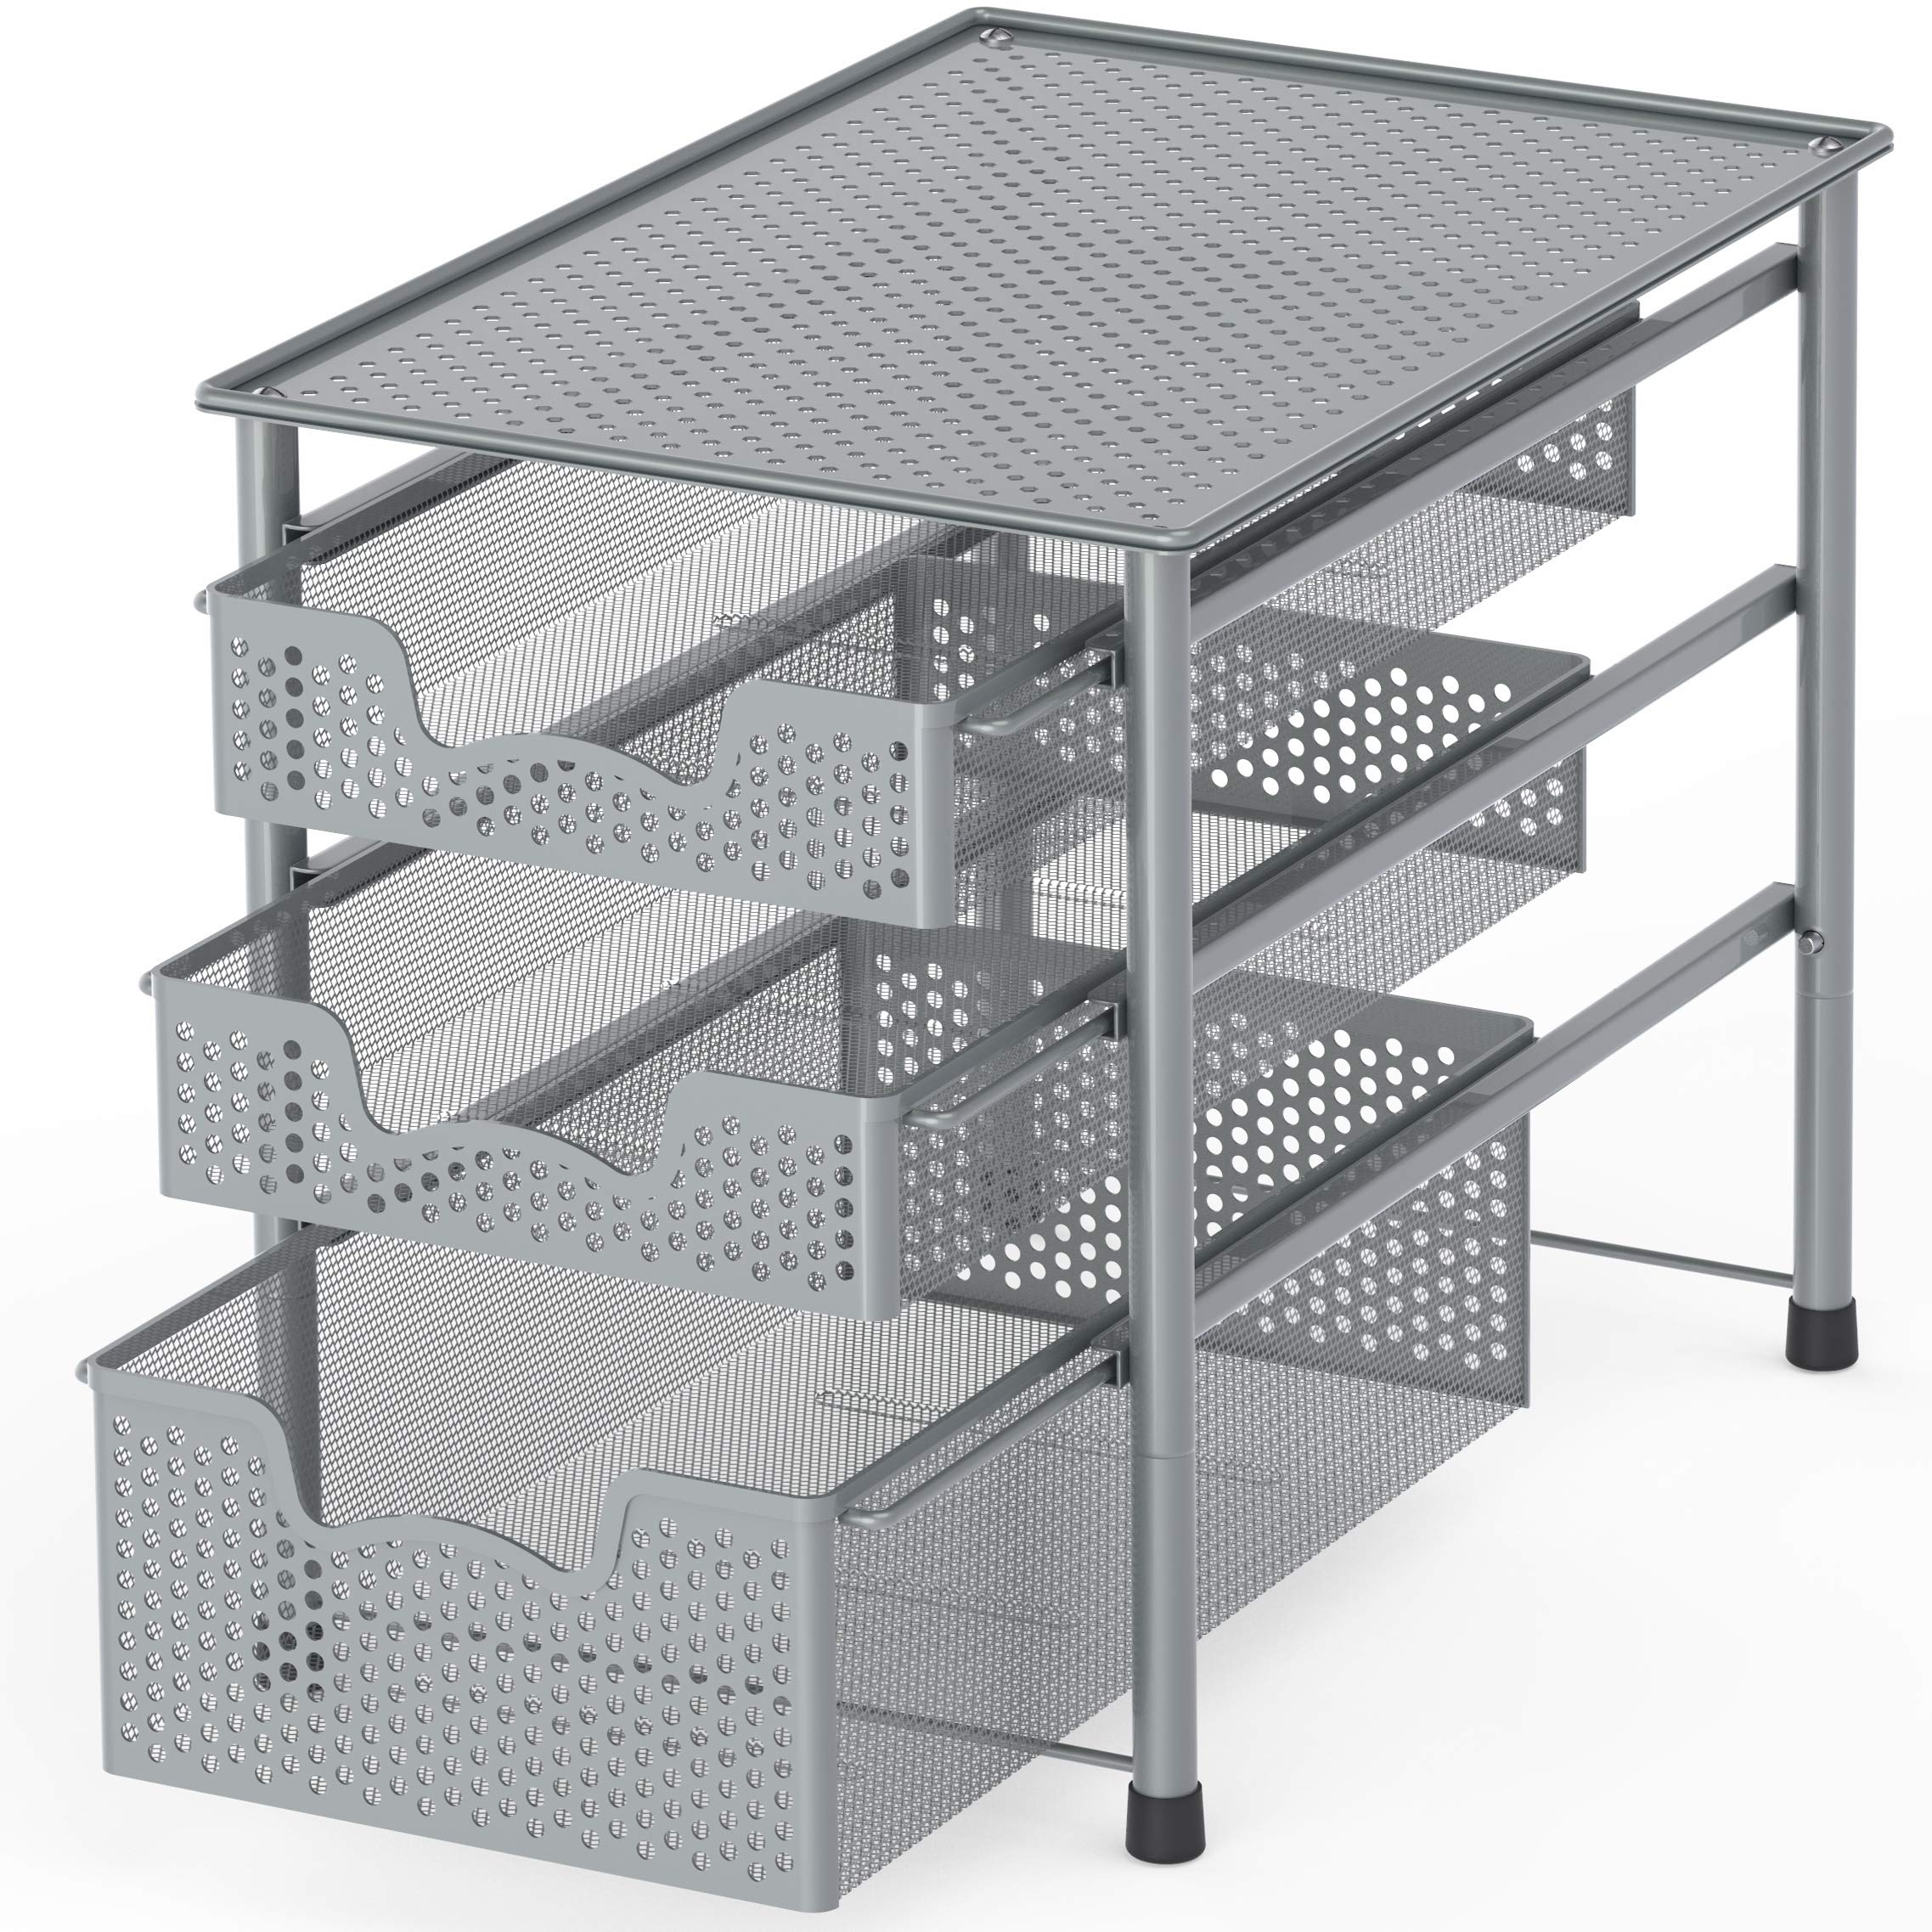 Simple Houseware Stackable 3 Tier Sliding Basket Organizer Drawer, Silver by Simple Houseware